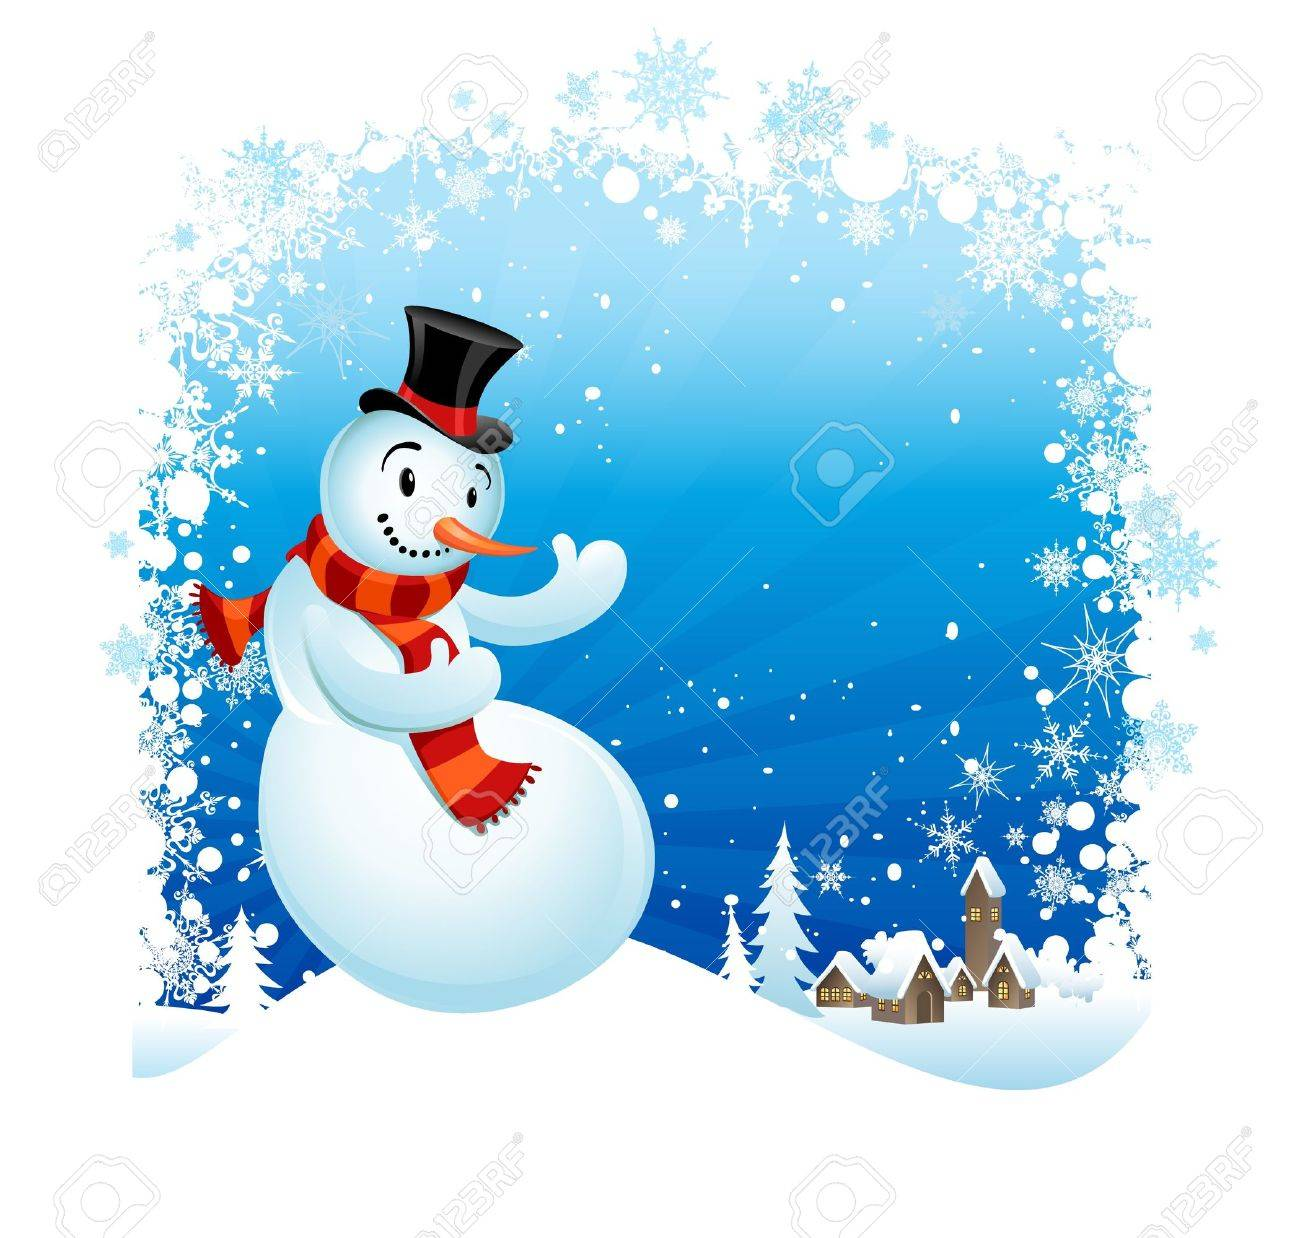 Snowman  with space for text Stock Vector - 10690547